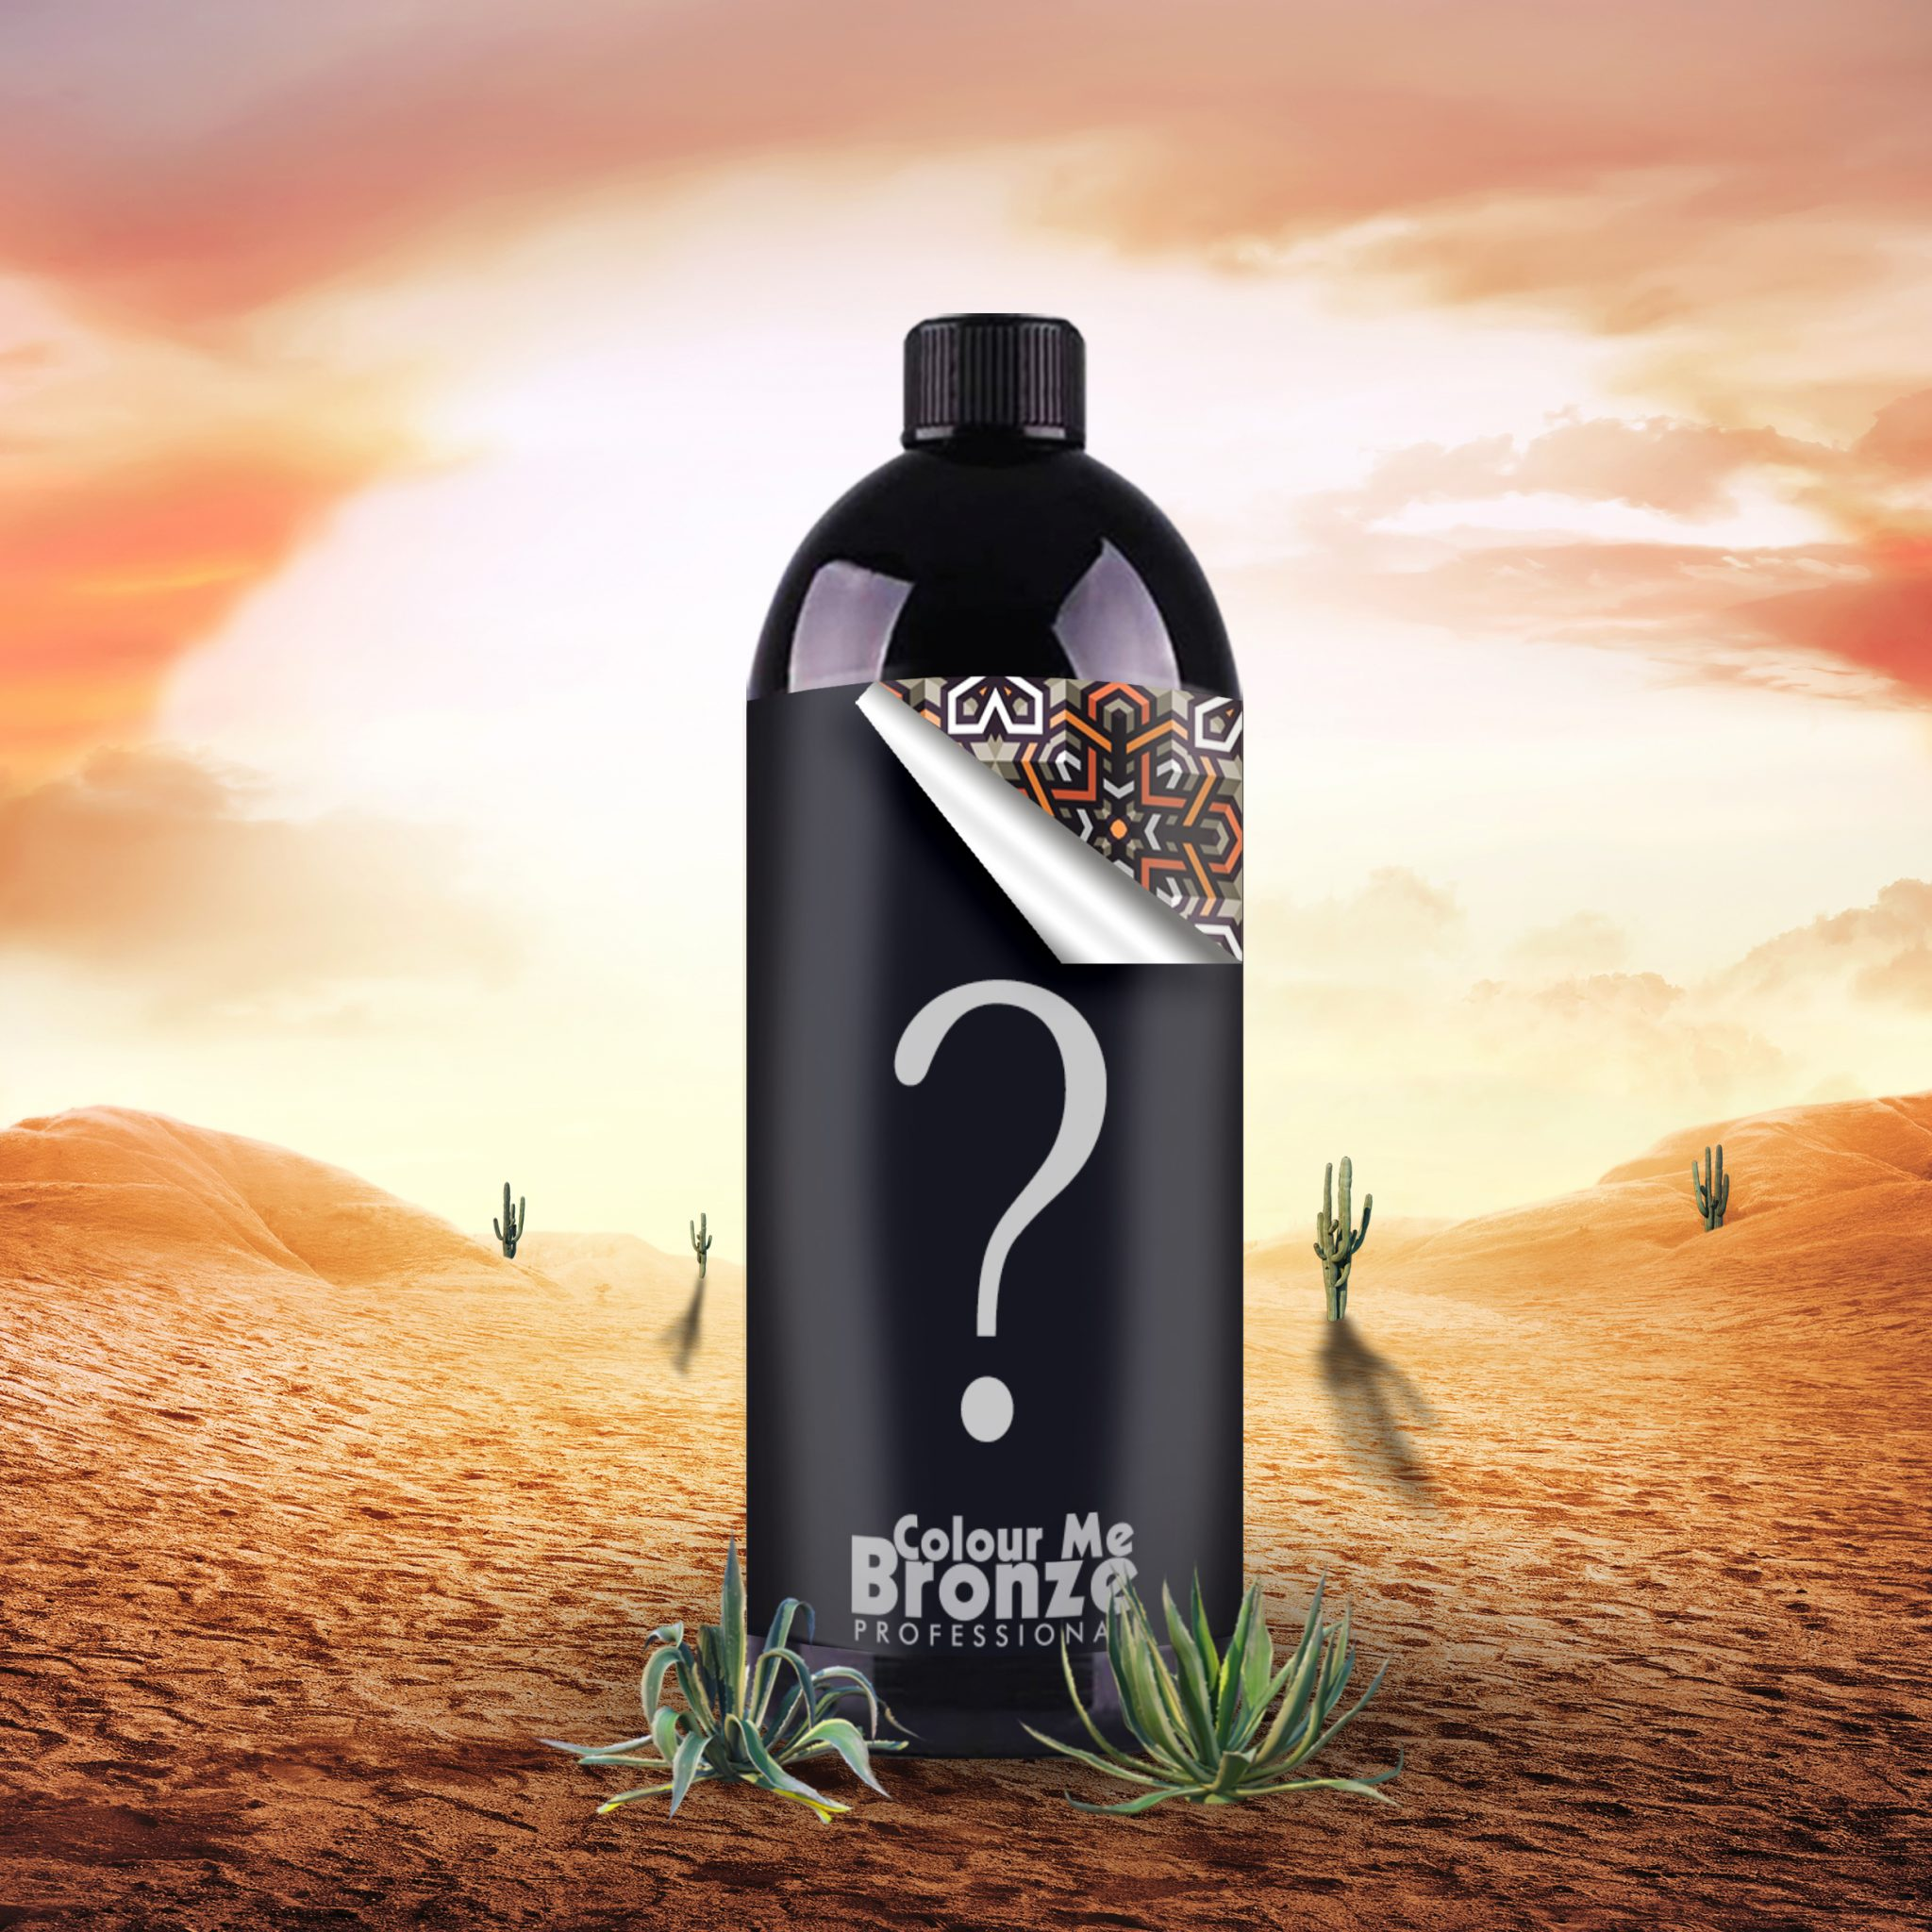 """Colour Me Bronze Professional """"World First"""" spray tan solution"""